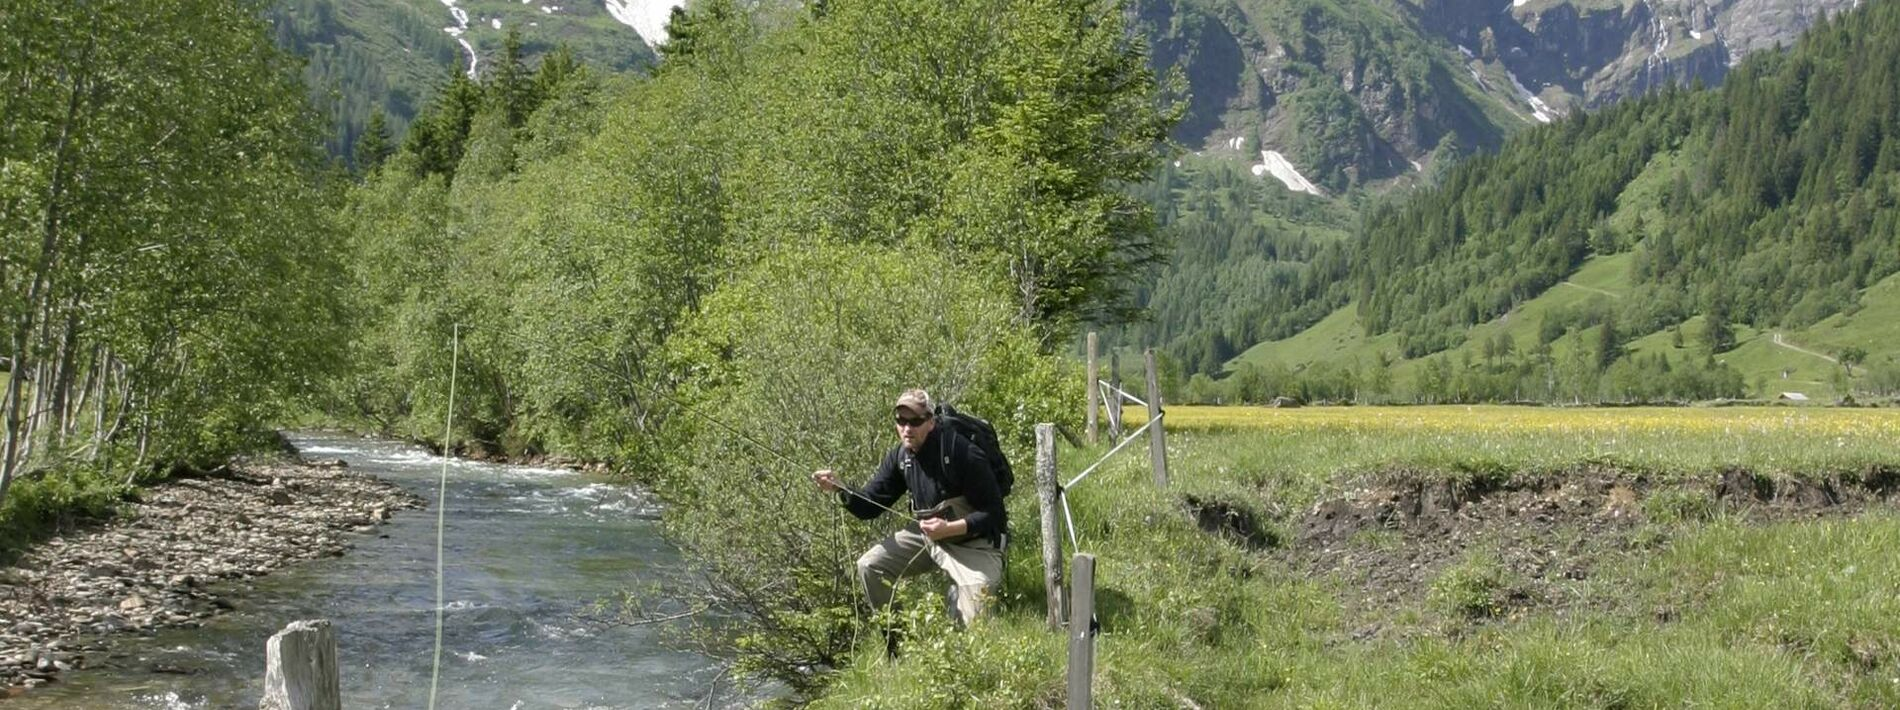 Fly fishing in the river of the